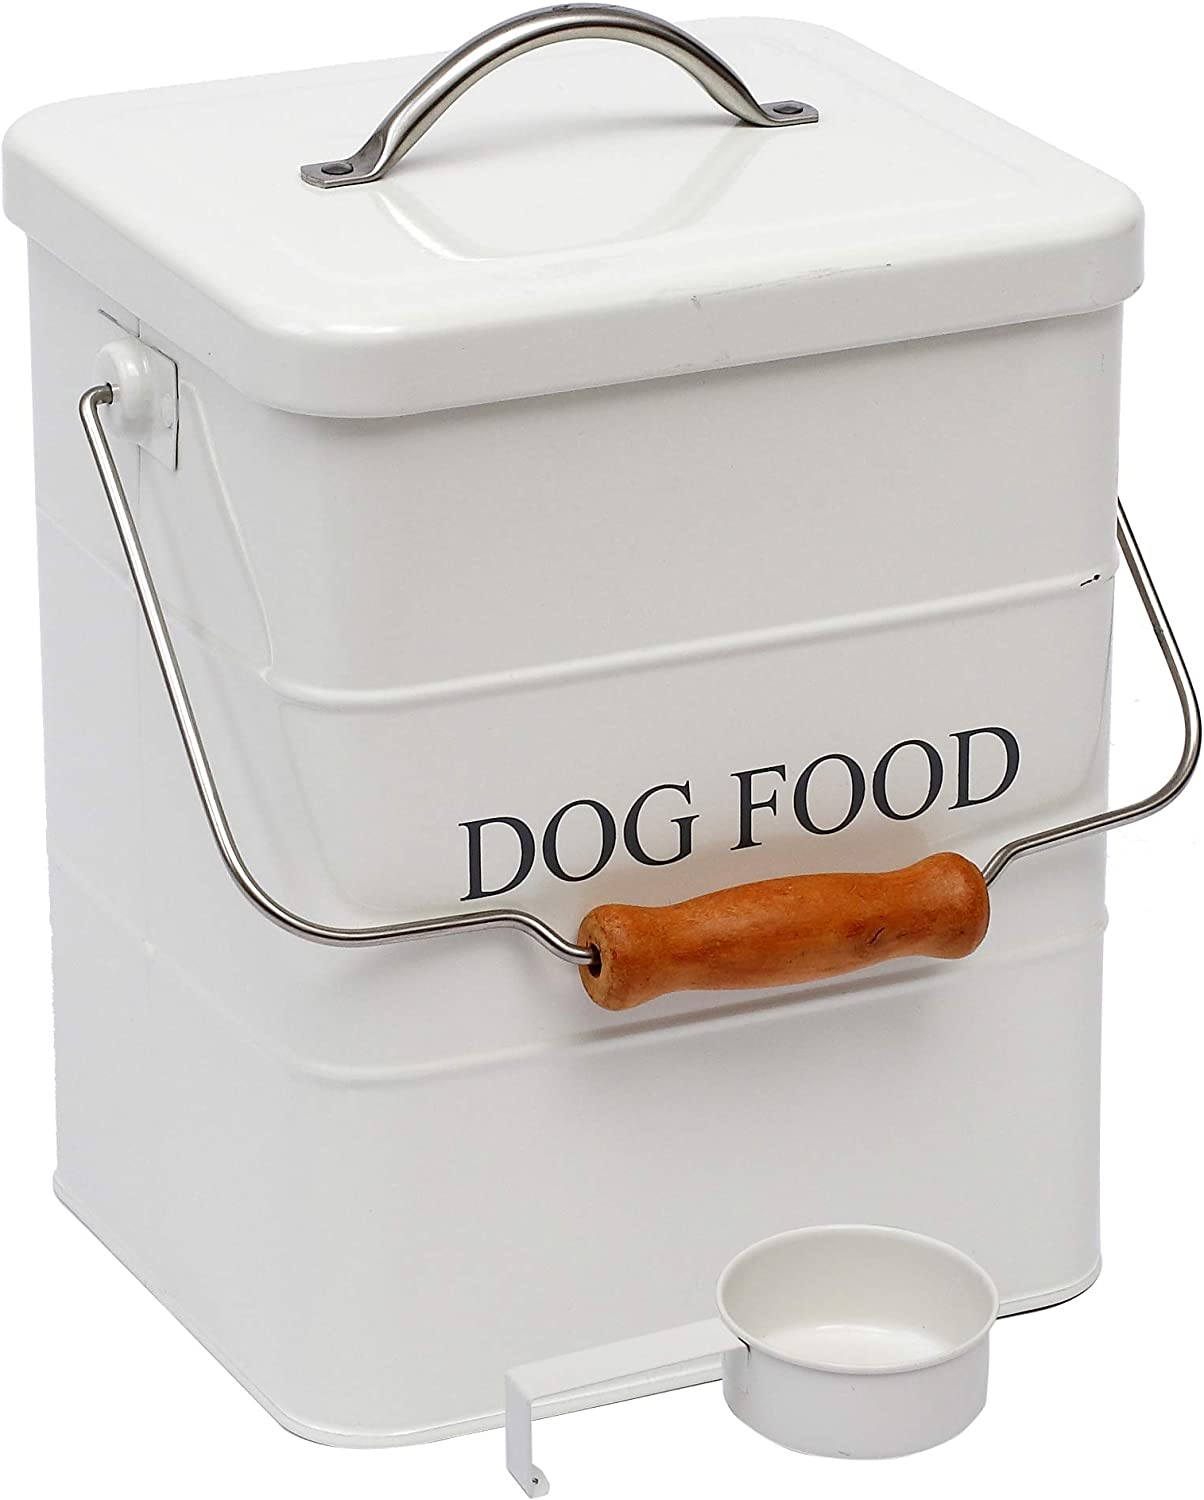 Morezi Pet Treat and Food Storage tin with lid and Scoop Included - White Powder - Carbon Steel - pet Food bin - Storage Canister tins